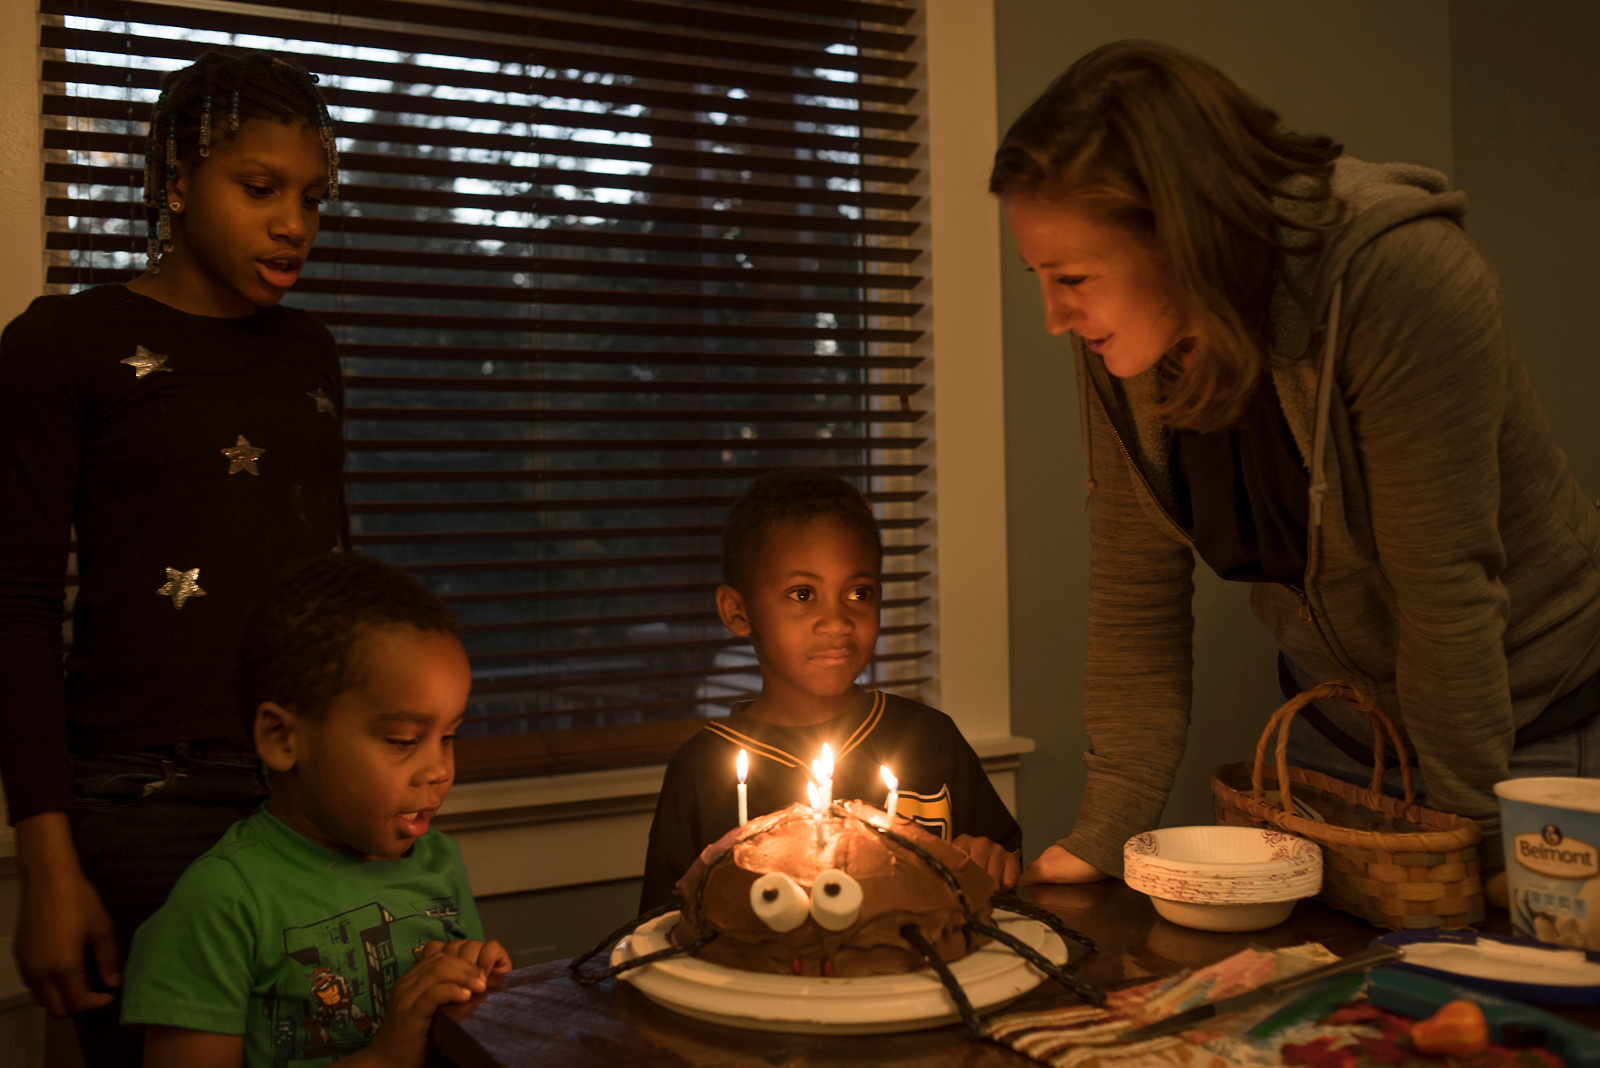 Carria, 5-year-old Darian and their mother Christi Rooke (right) sing happy birthday to Jeremiah (center) who turned 6 this month. (Photo by Martha Rial/PublicSource)